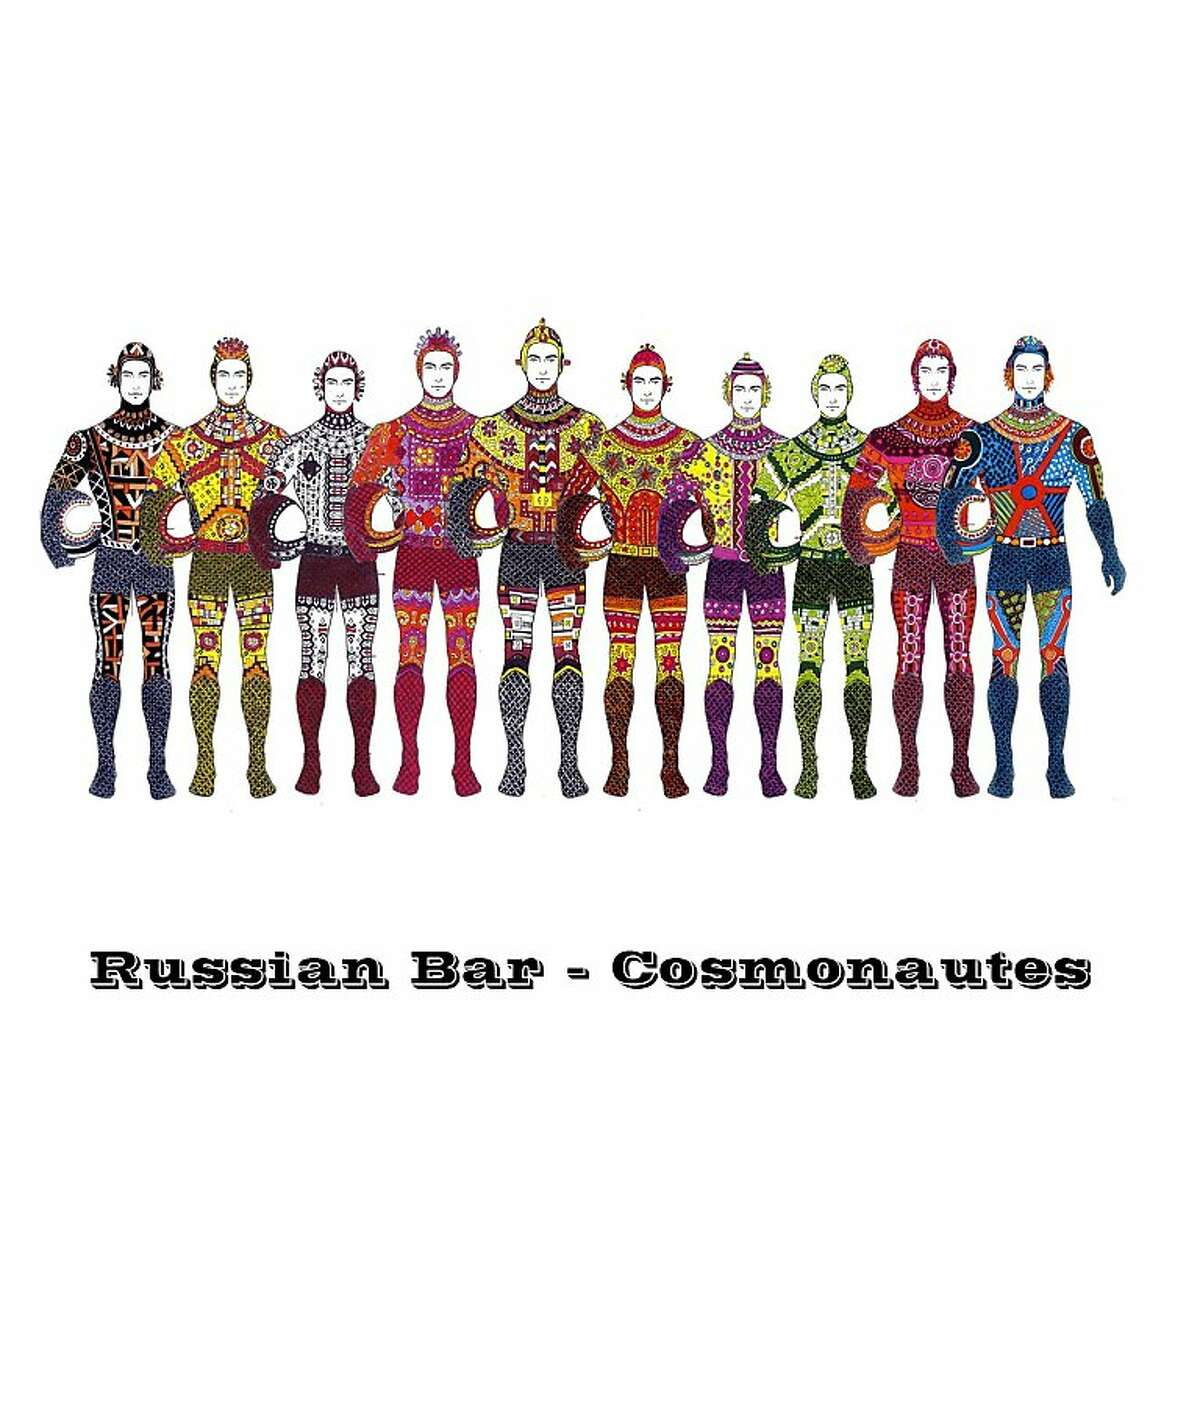 Costume design by Kym Barrett for Cosmonauts (Russian bars) who perform in cirque du soleil for